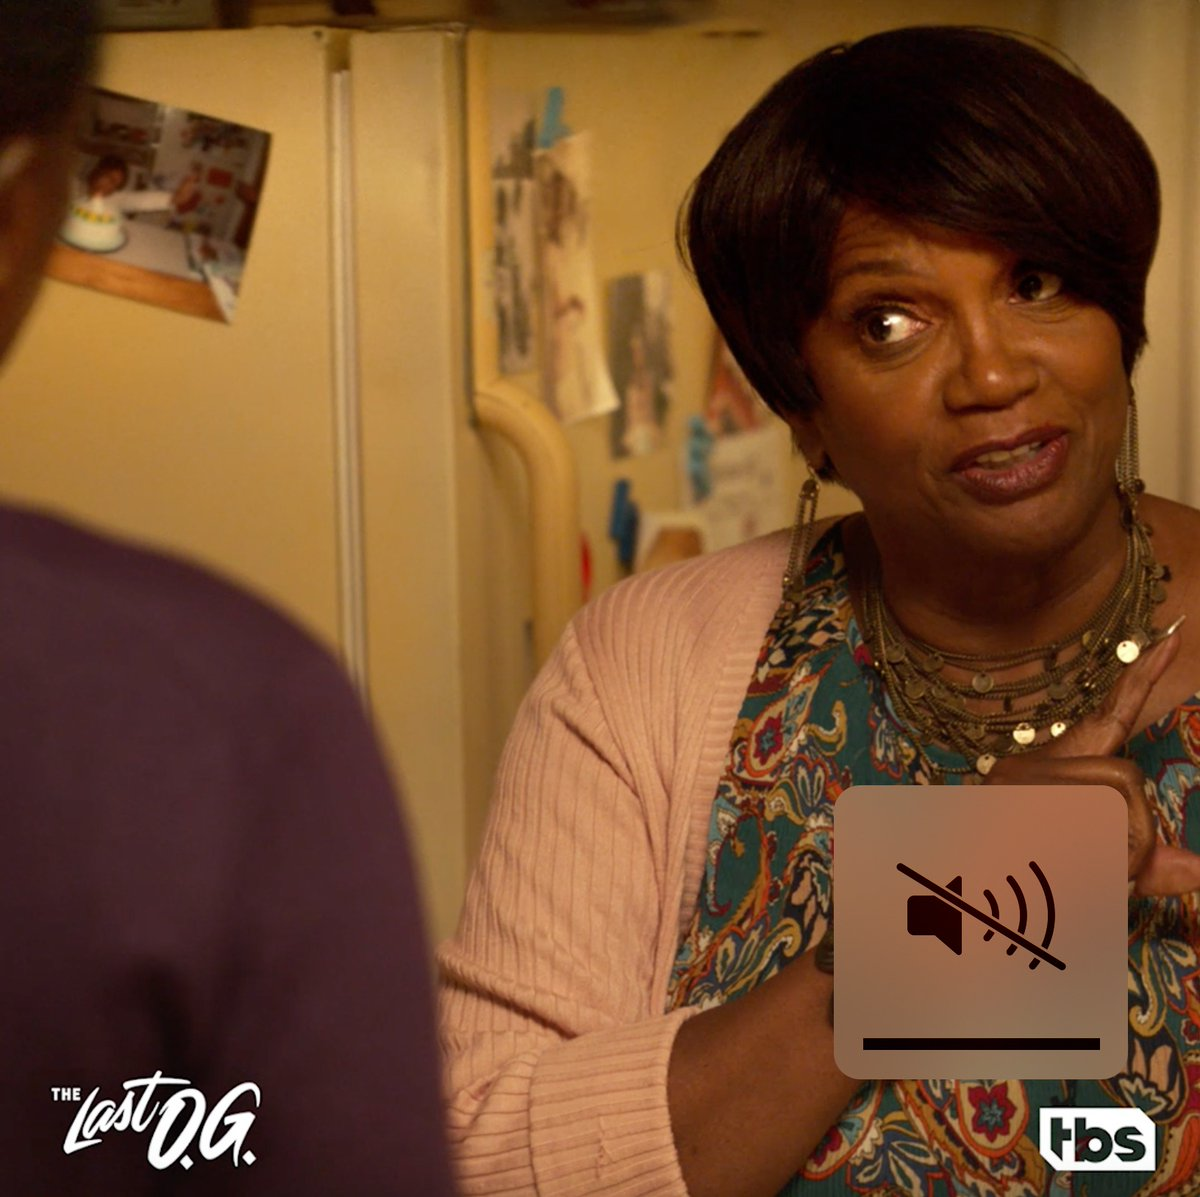 Tray, it may be time to step back a bit and give Carl a chance. ❤️ #TheLastOG